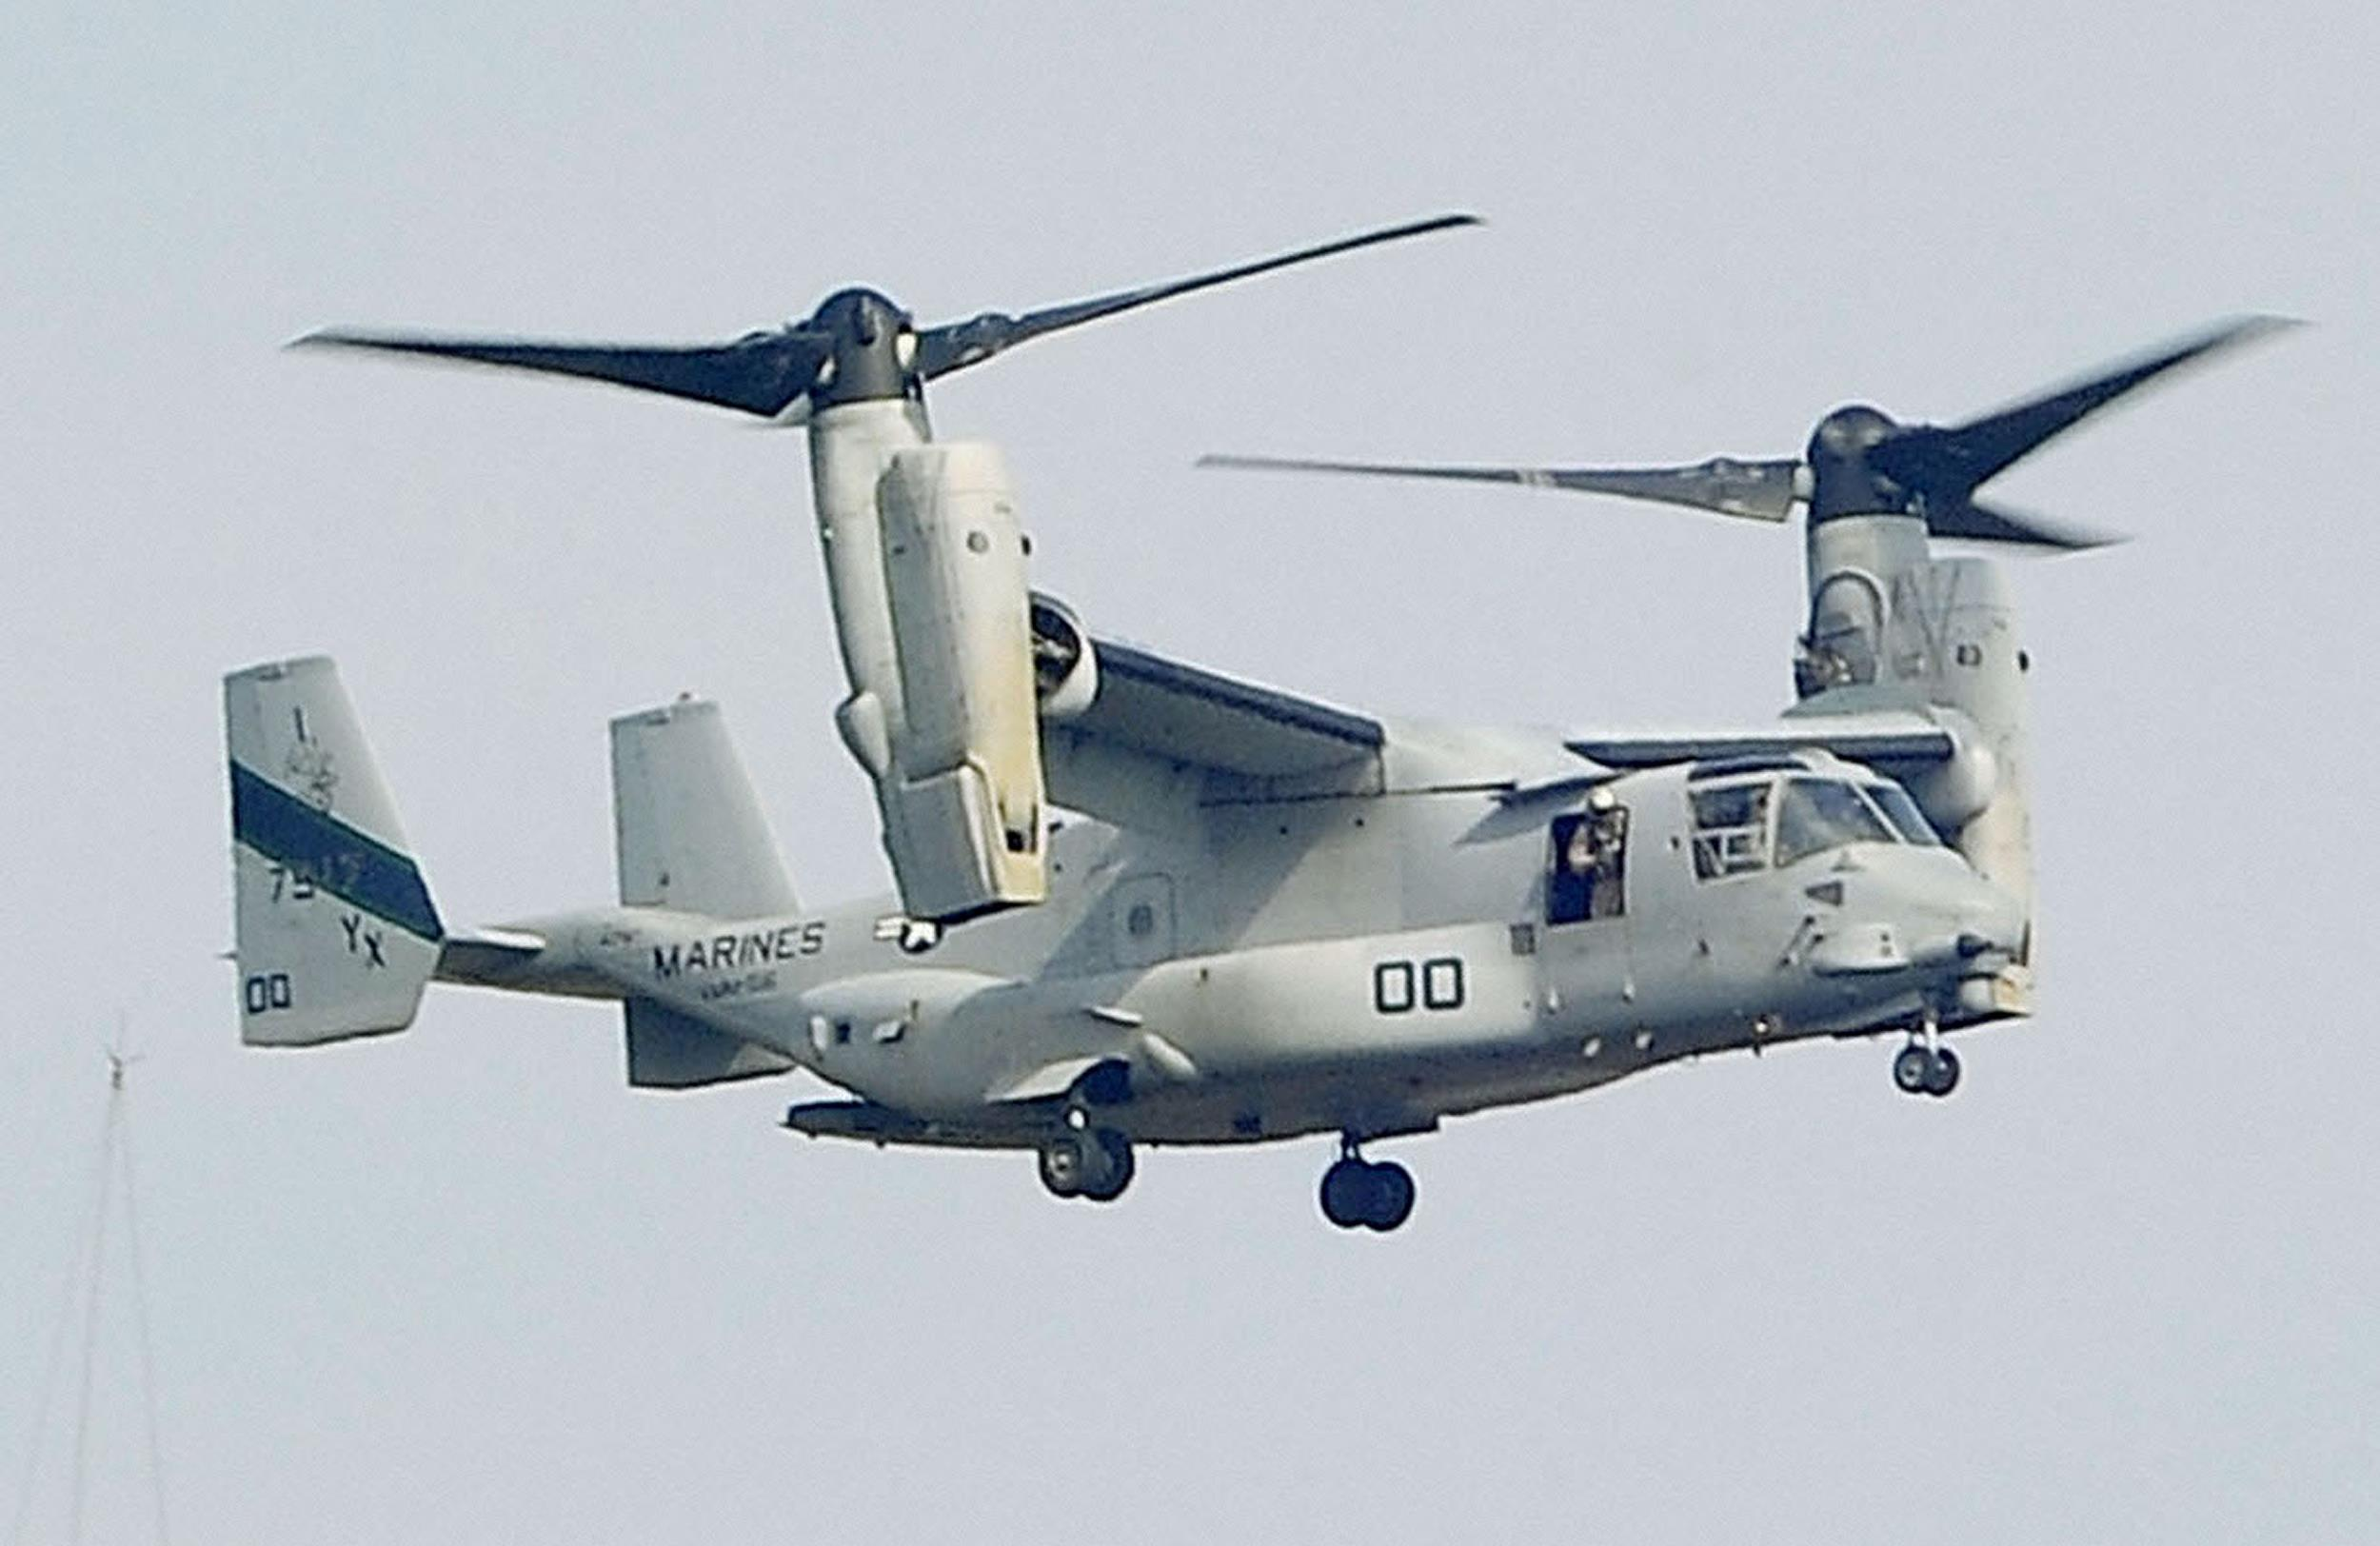 An MV-22 Osprey aircraft of the U.S. Marine Corps